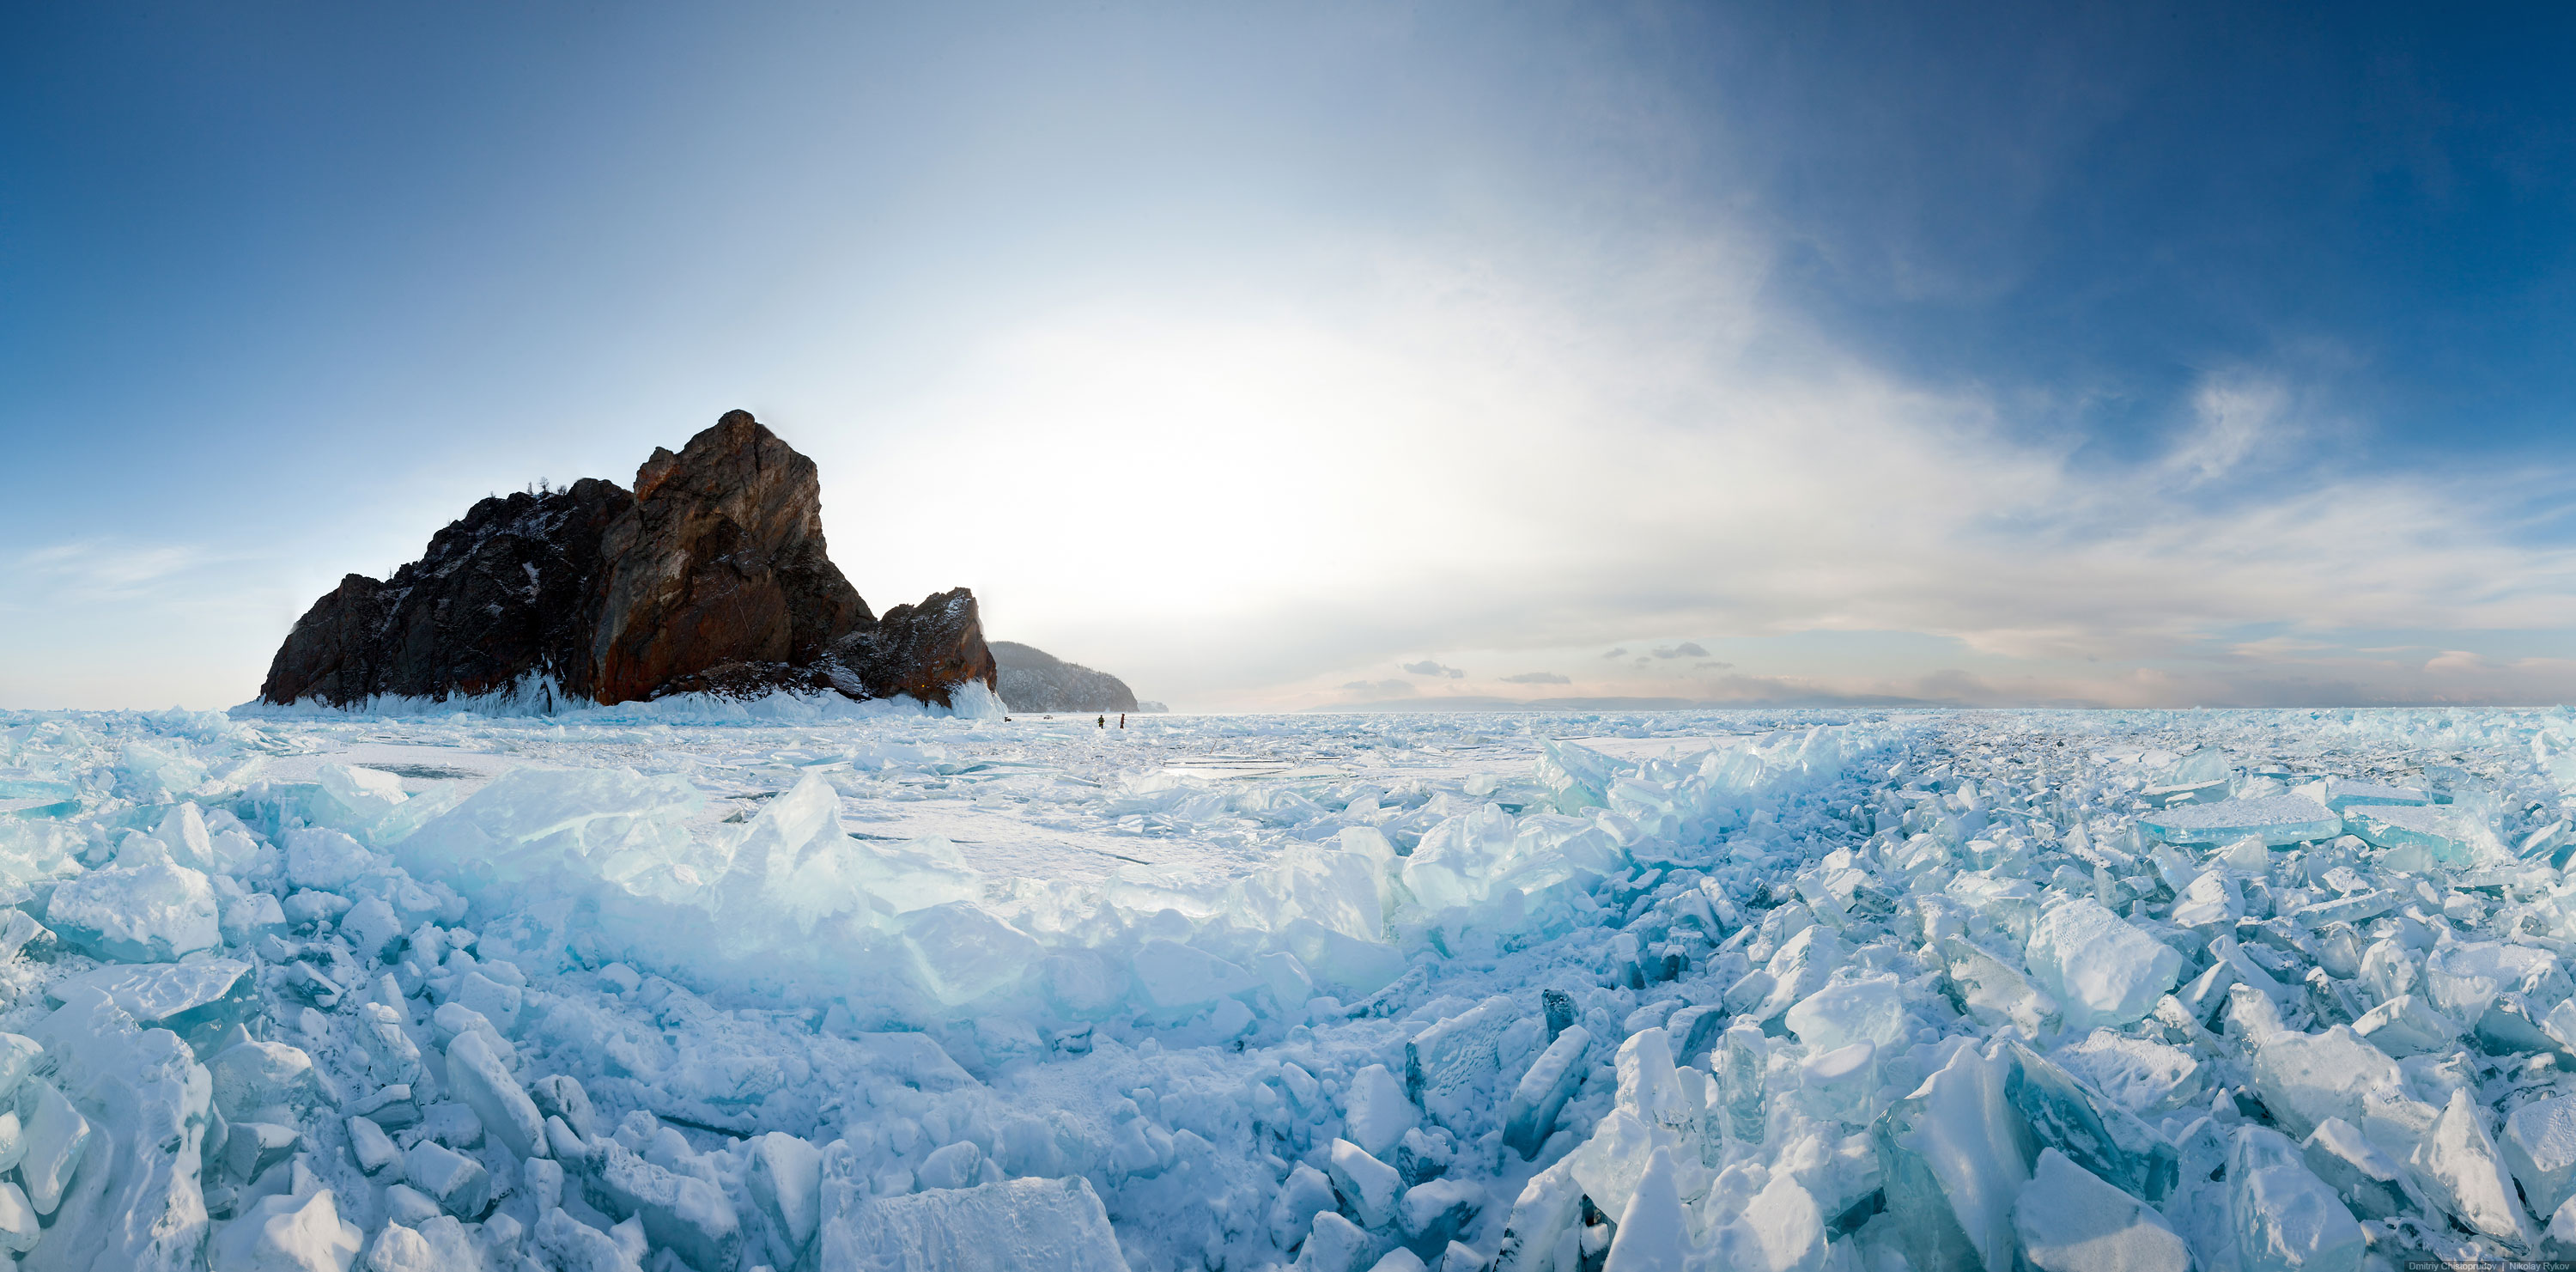 Lake Baikal and Olkhon Island: Wonderful ice world of cold Siberia - 46